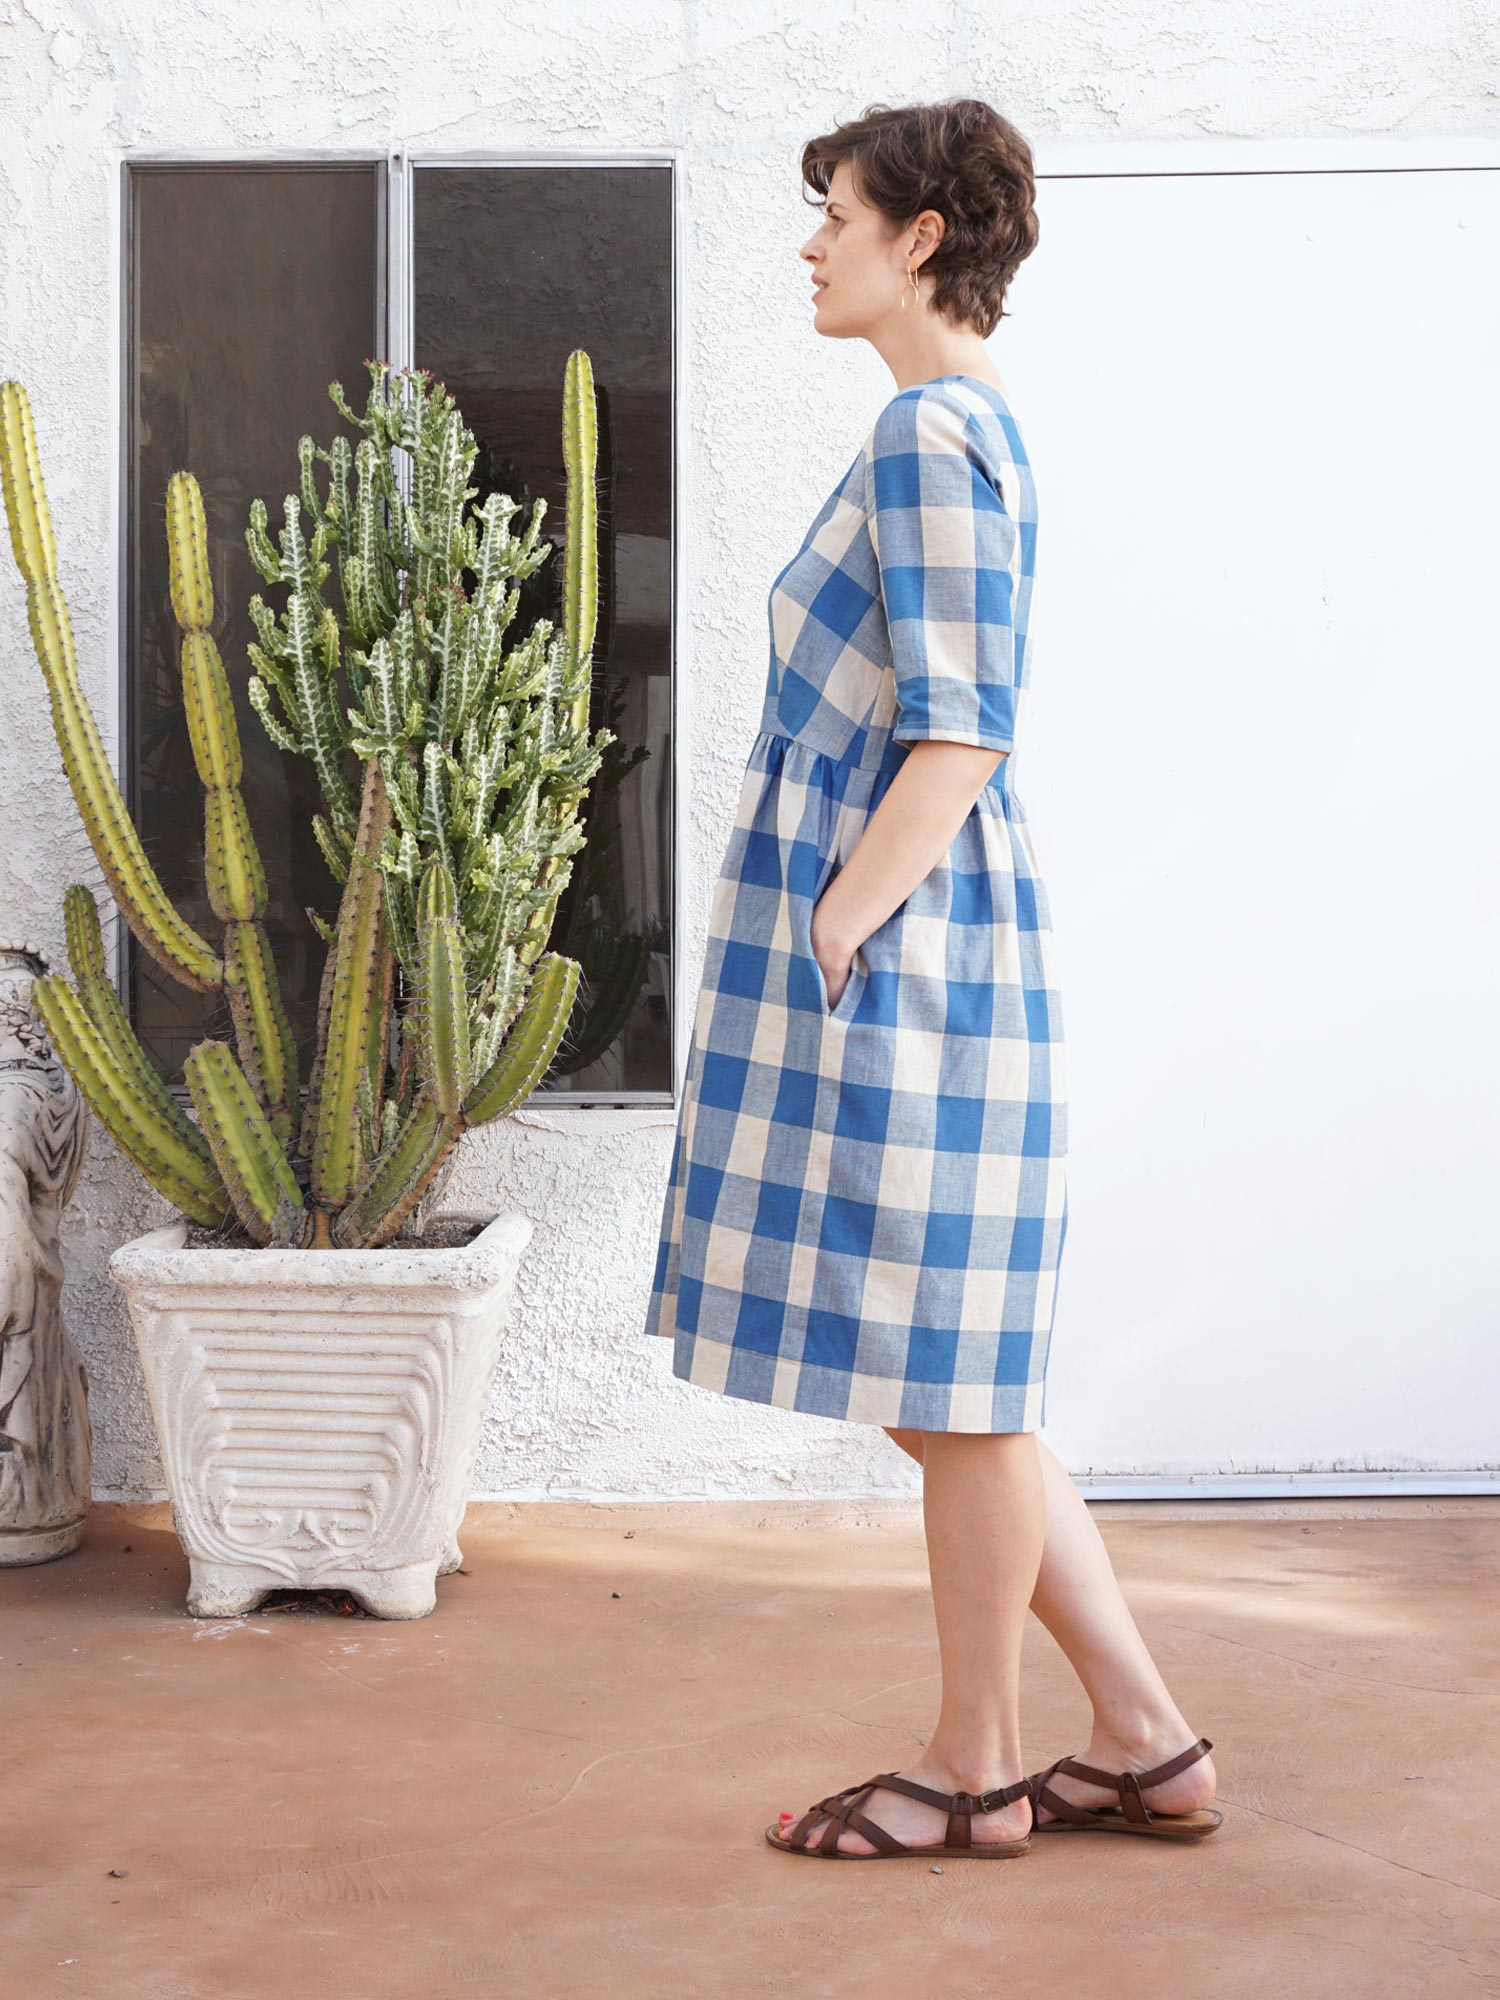 DIY V-neck Shirtdress – A review of the Darling Ranges Dress pattern by Megan Nielsen | Sew DIY